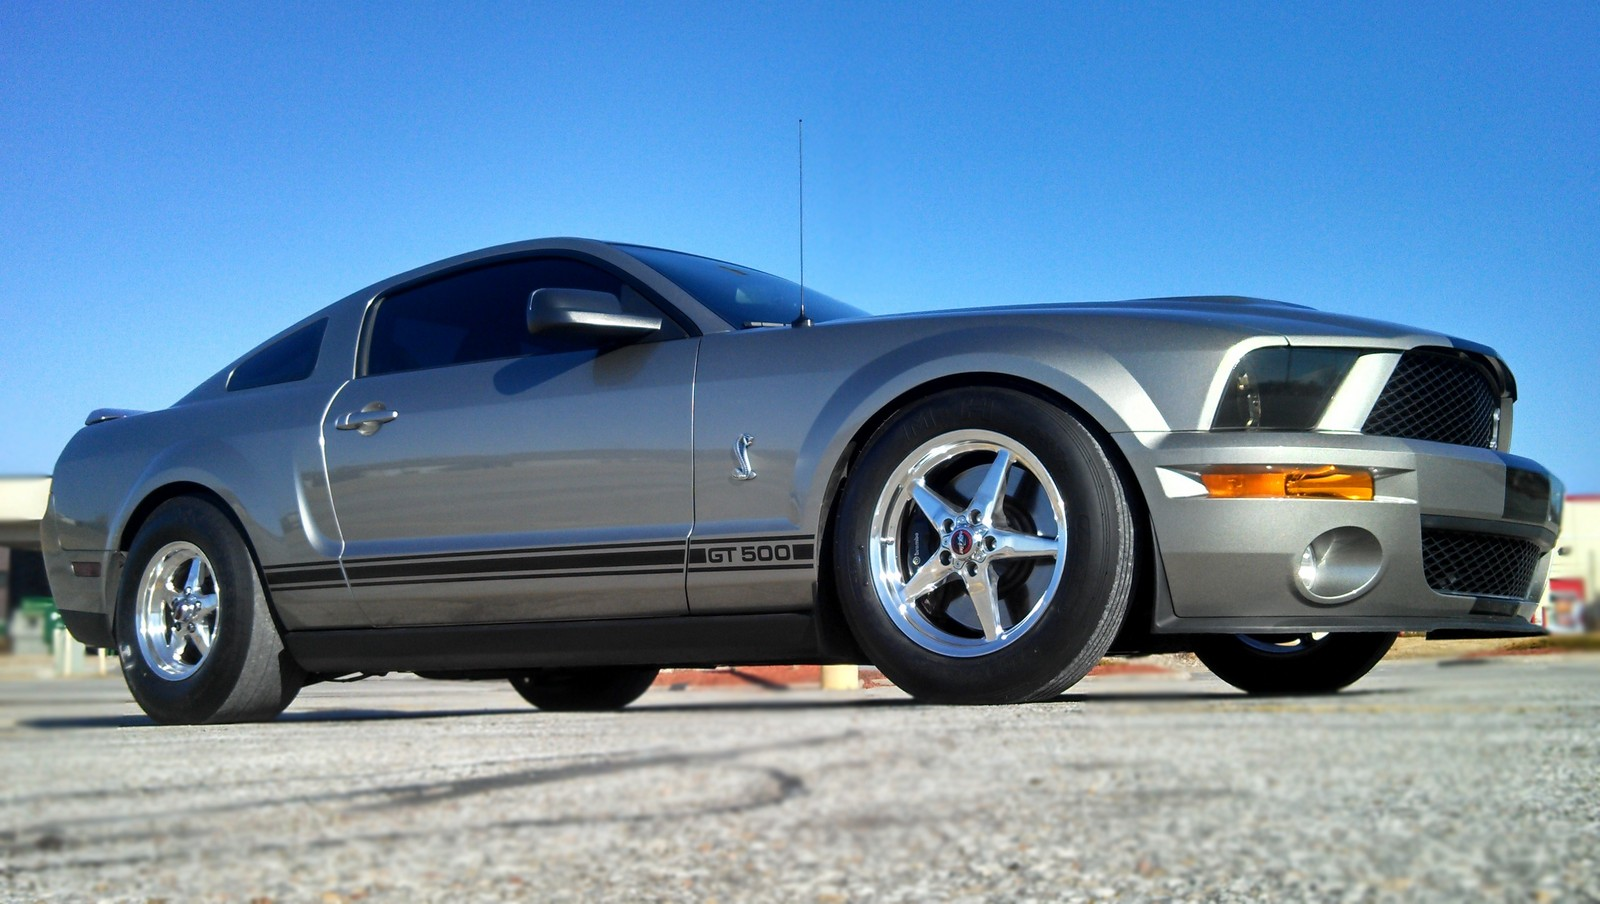 Vapor Silver 2008 Ford Mustang Shelby-GT500 GT500